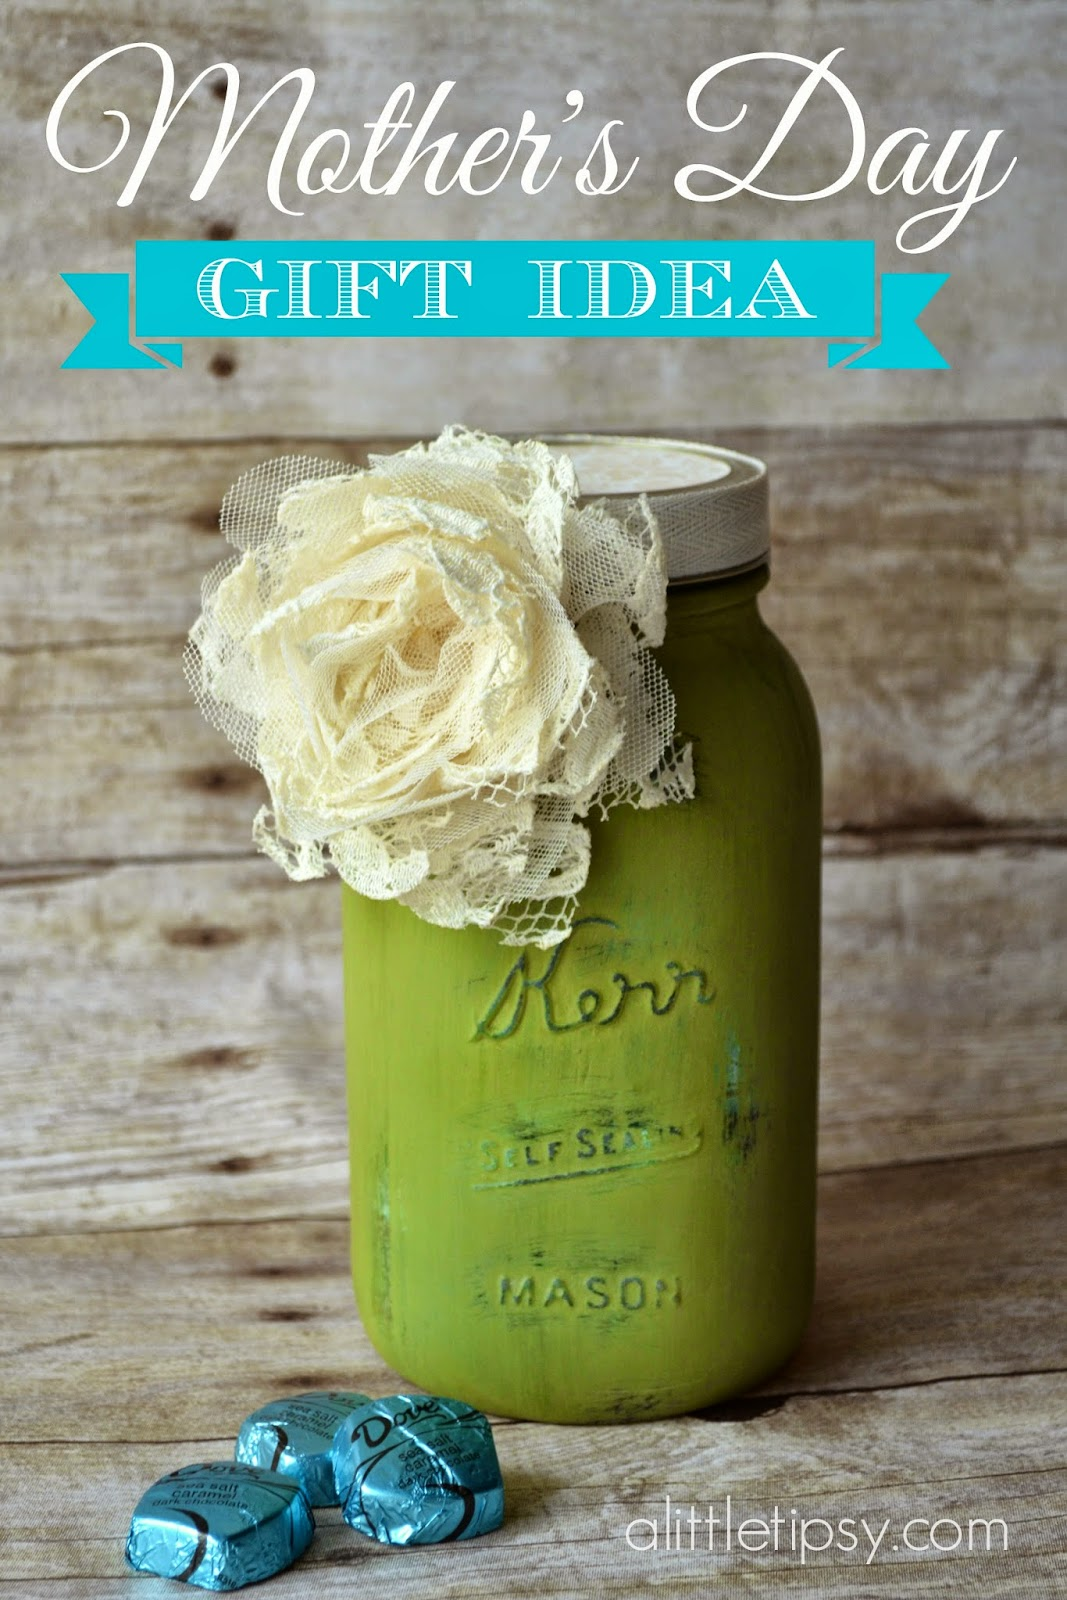 Bulk Mothers Day Gifts For Church Easy Mother 39 s Day Gift Idea